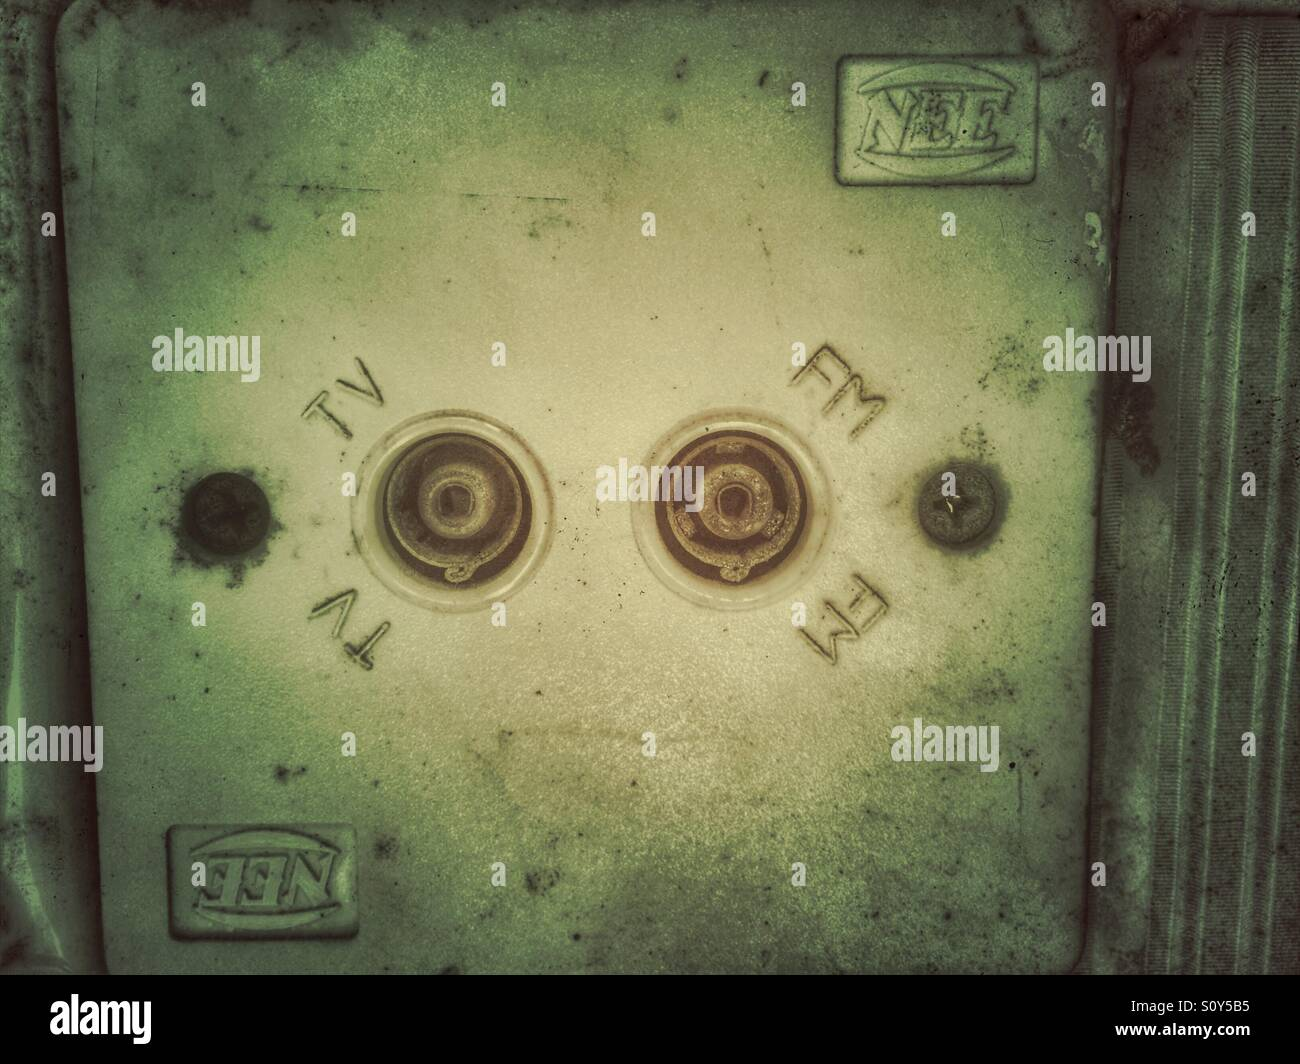 Wall Plates Stock Photos & Wall Plates Stock Images - Alamy